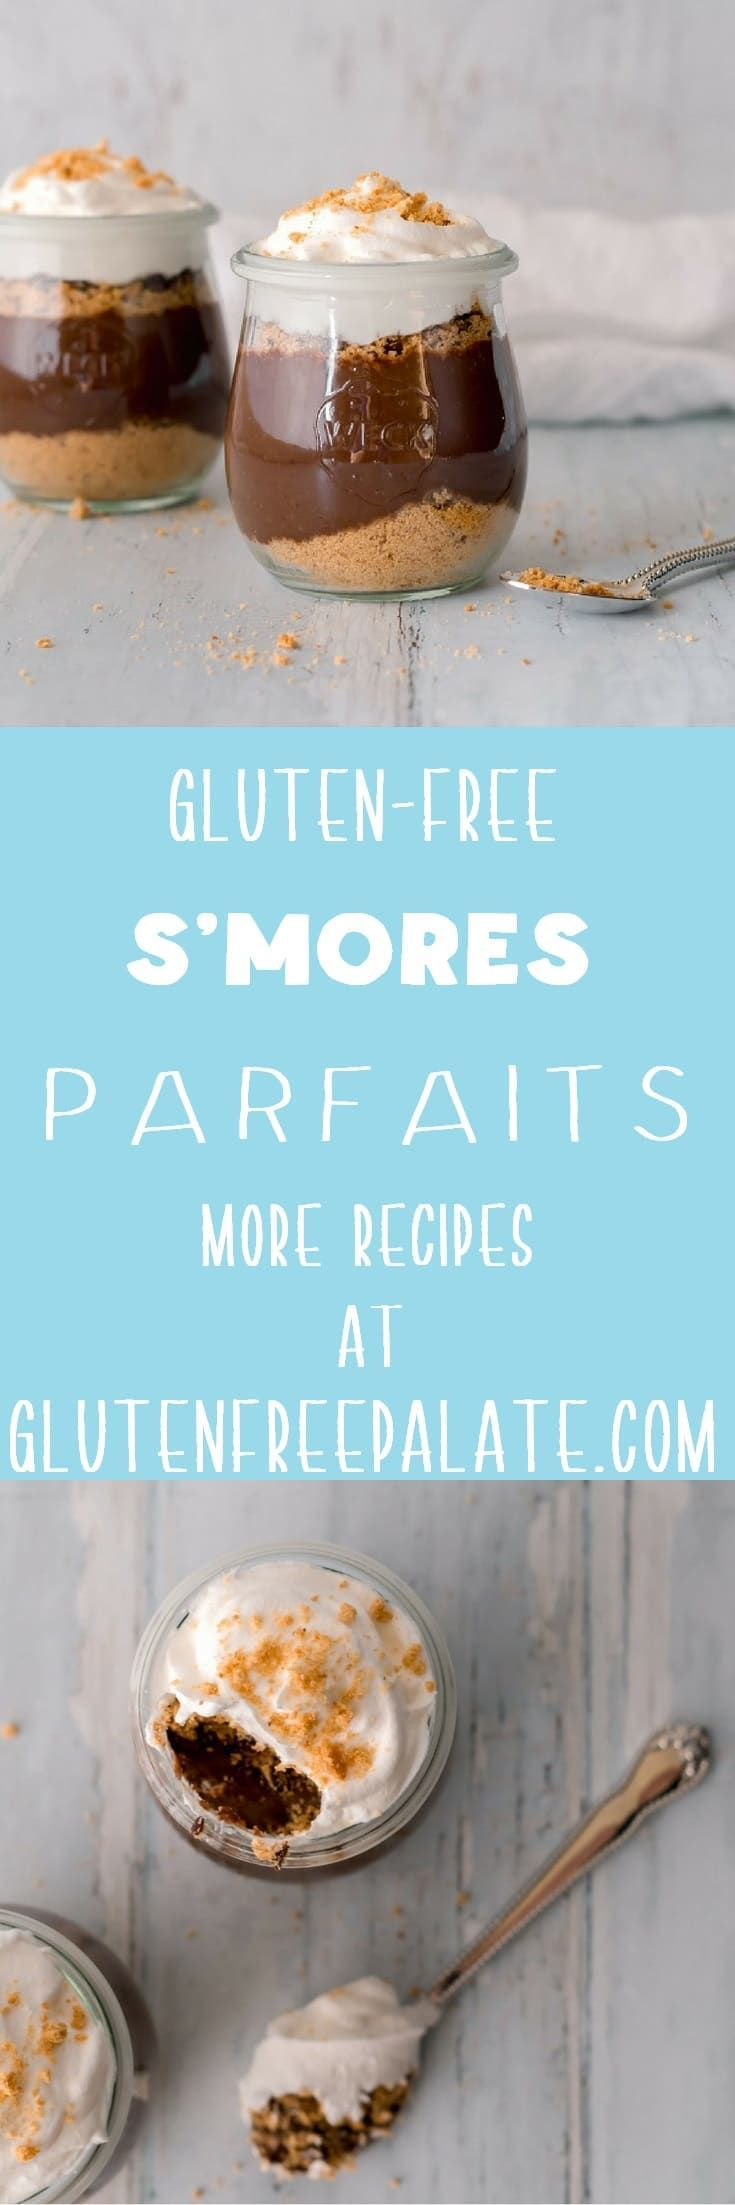 Gluten-free S'mores Parfait - a simple, yet decadent gluten-free dessert with layers of graham crackers, chocolate, and whipped cream. via @gfpalate